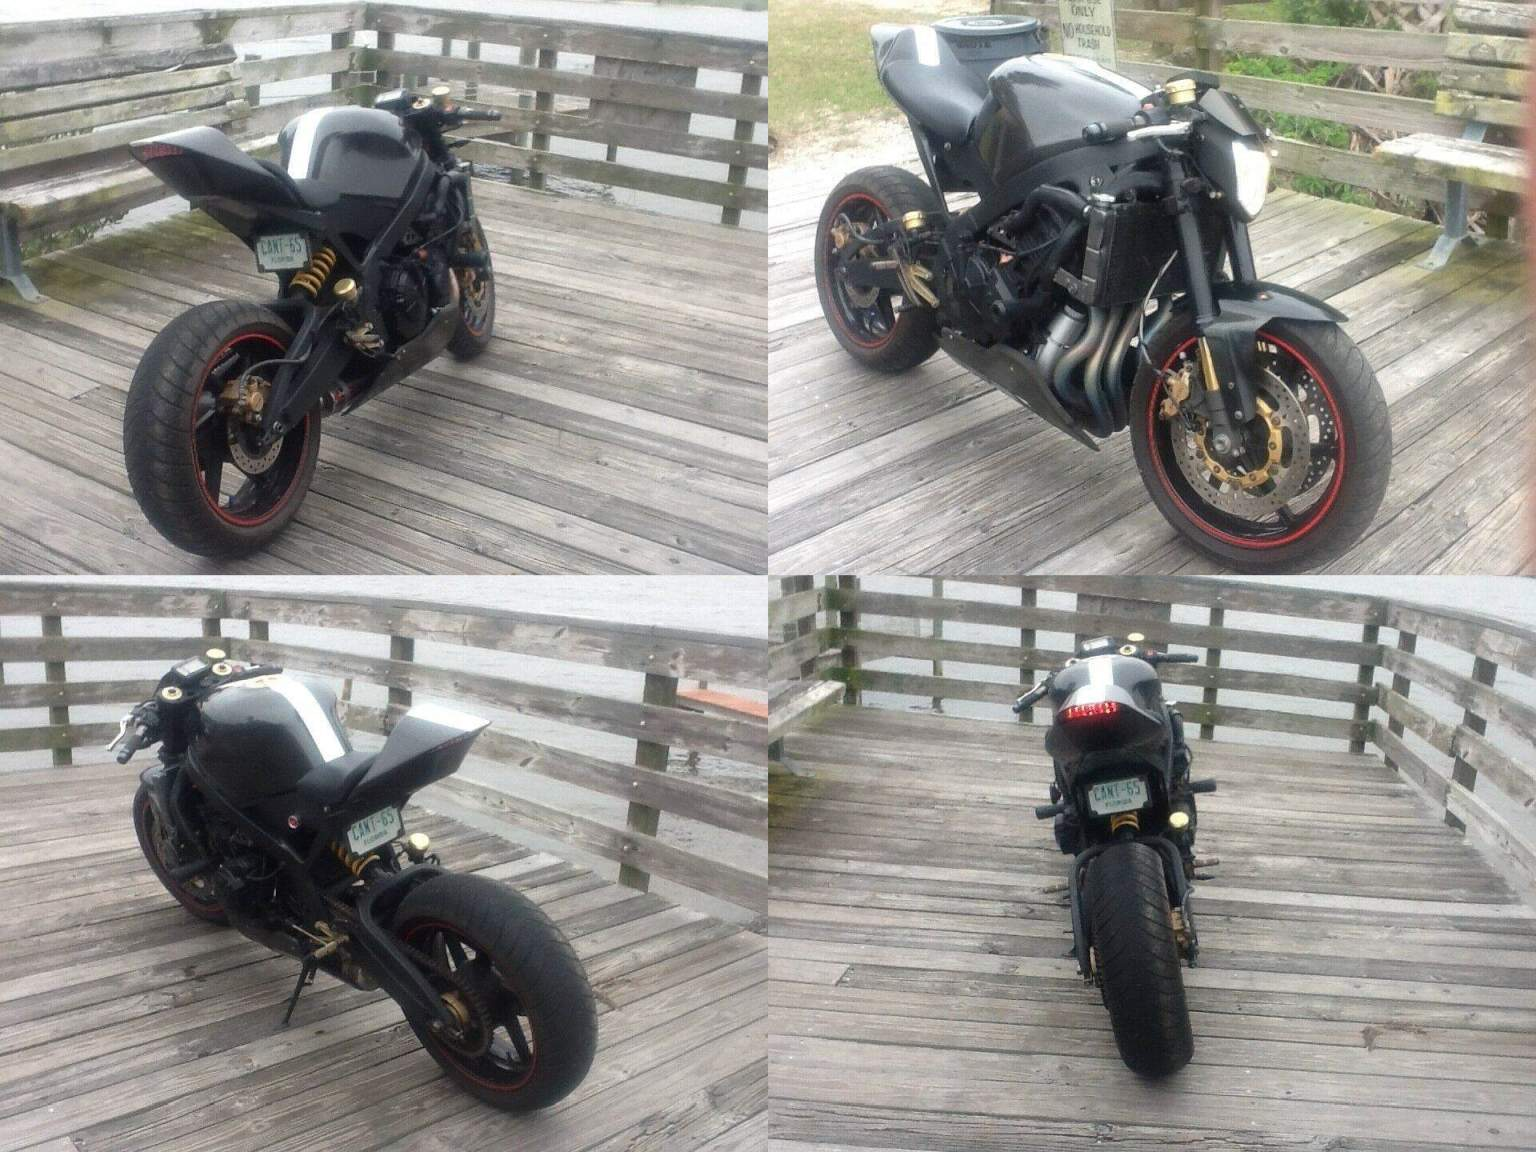 1993 Custom Built Motorcycles Honda CBR600f2 agressor Black/carbon fiber/red/white used for sale craigslist